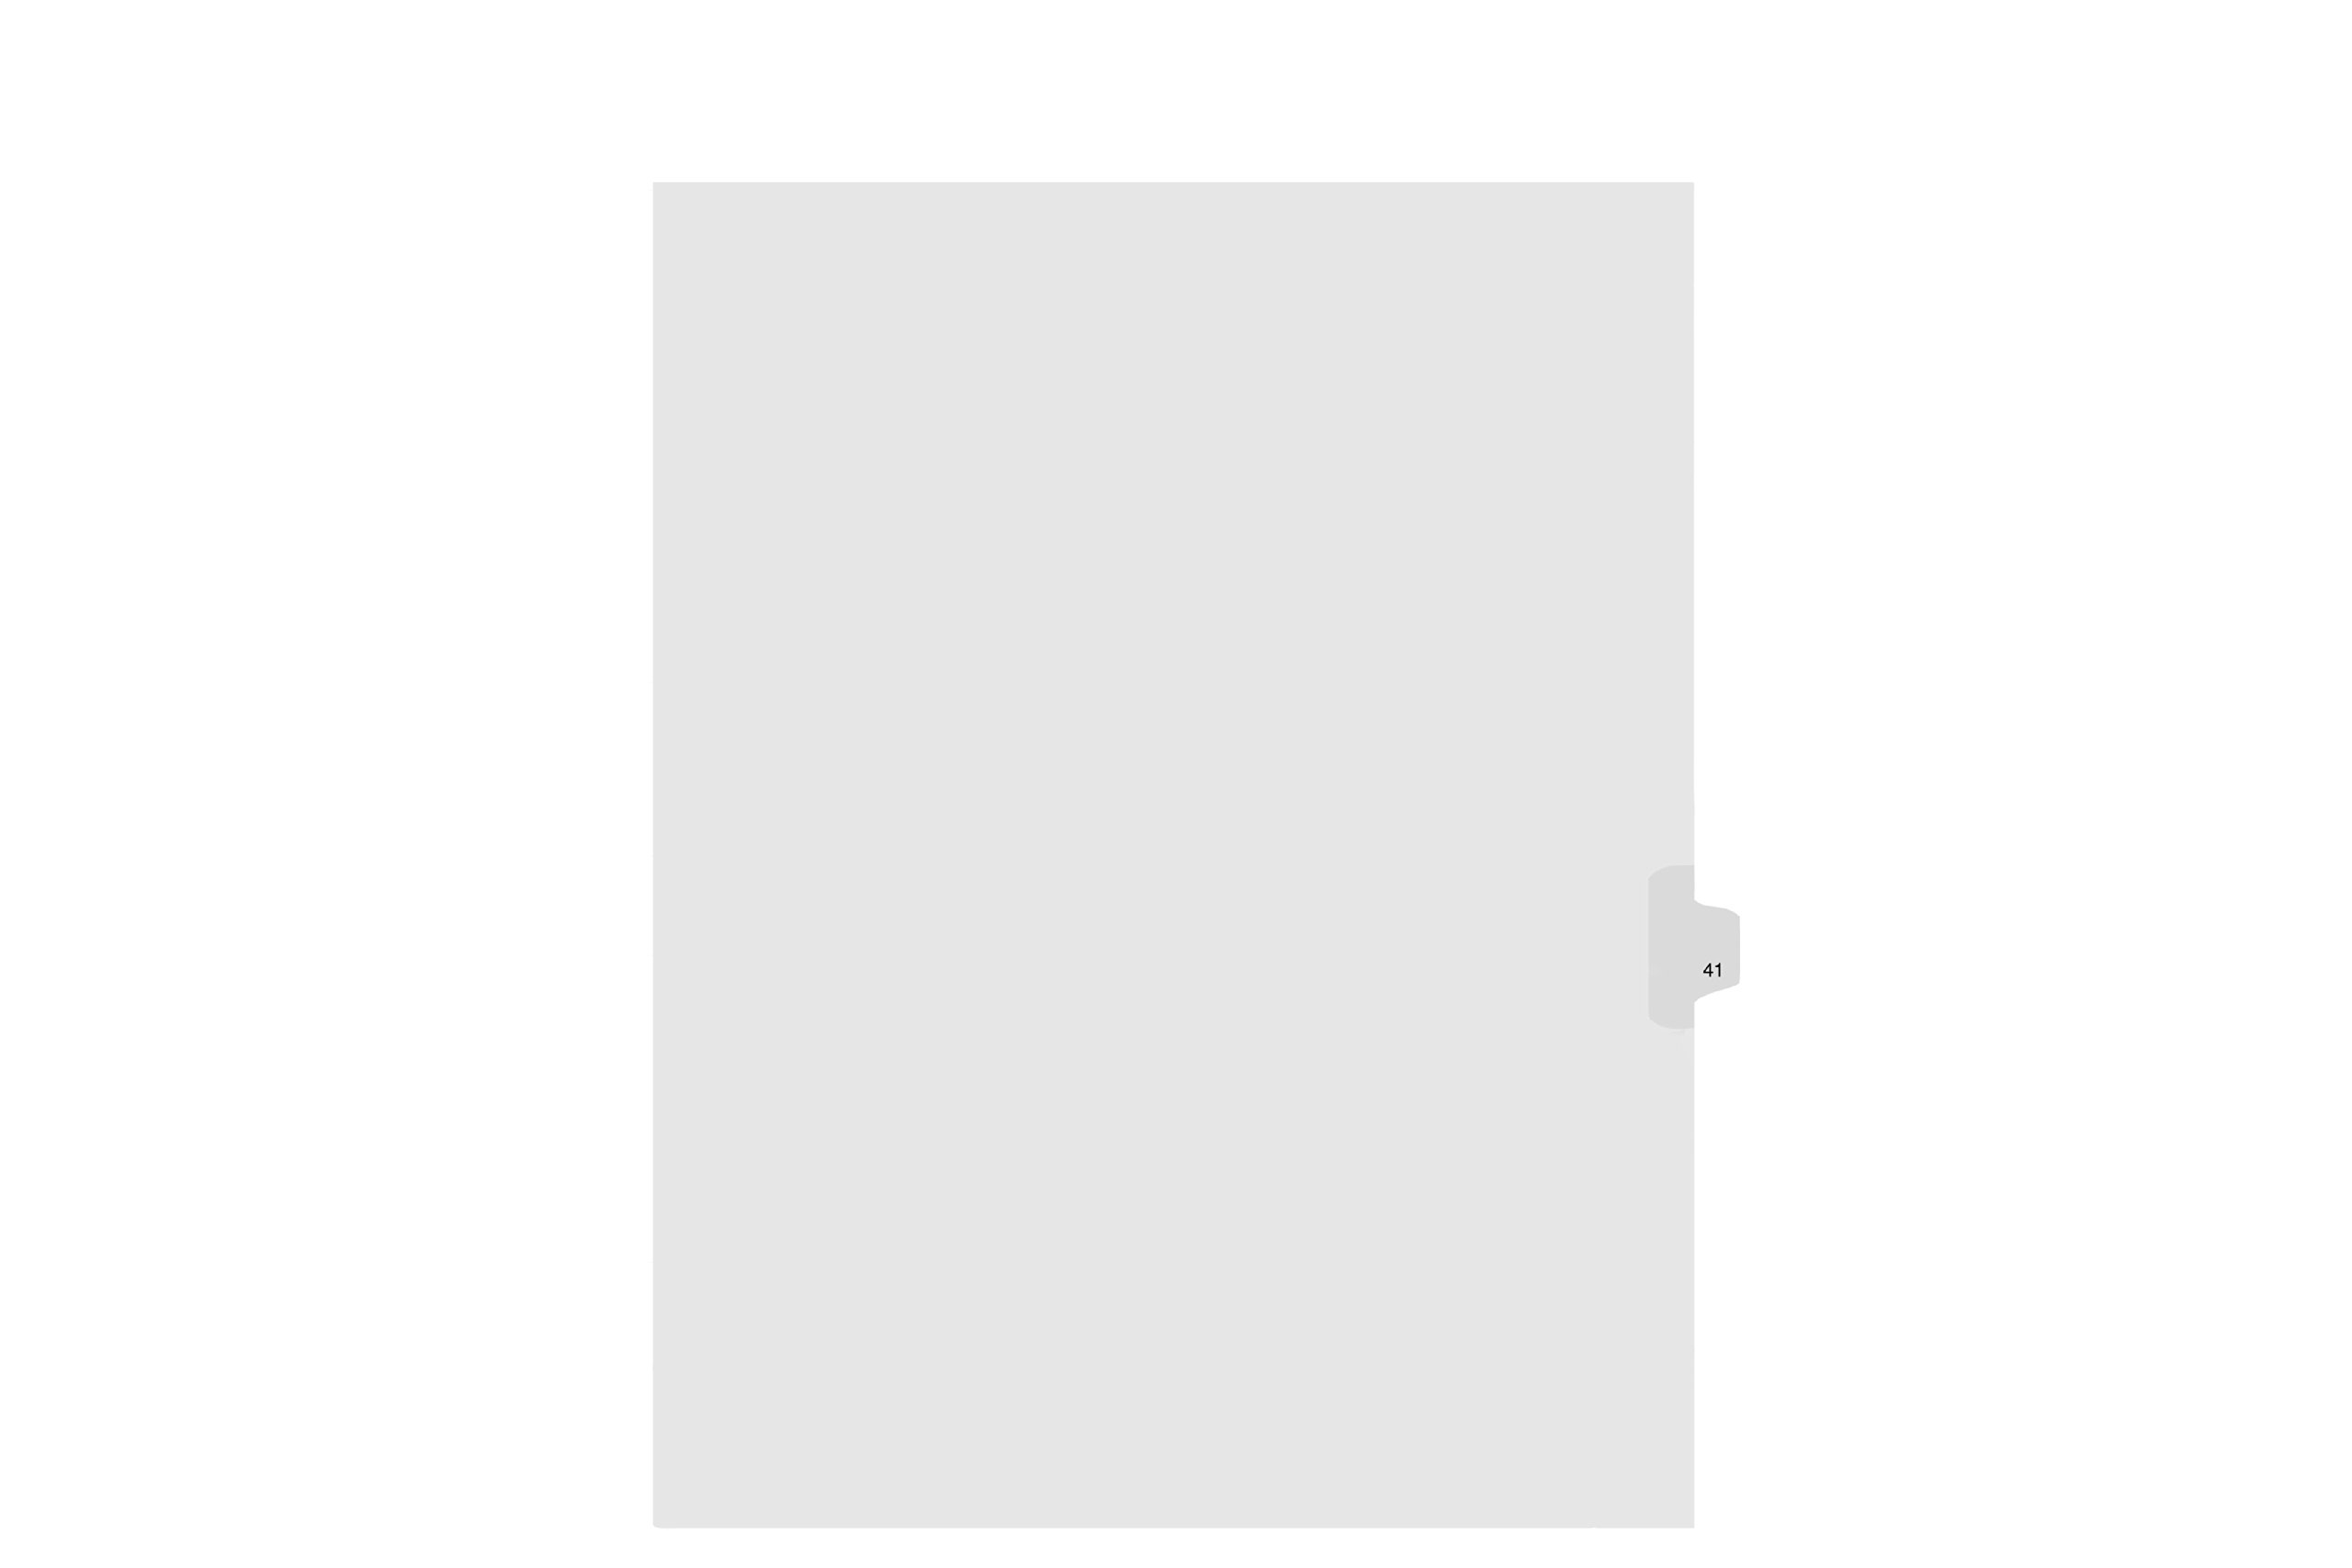 Kleer-Fax Letter Size Individually Numbered 1/25th Cut Side Tab Index Dividers, 25 Sheets per Pack, White, Number 41 (91041)